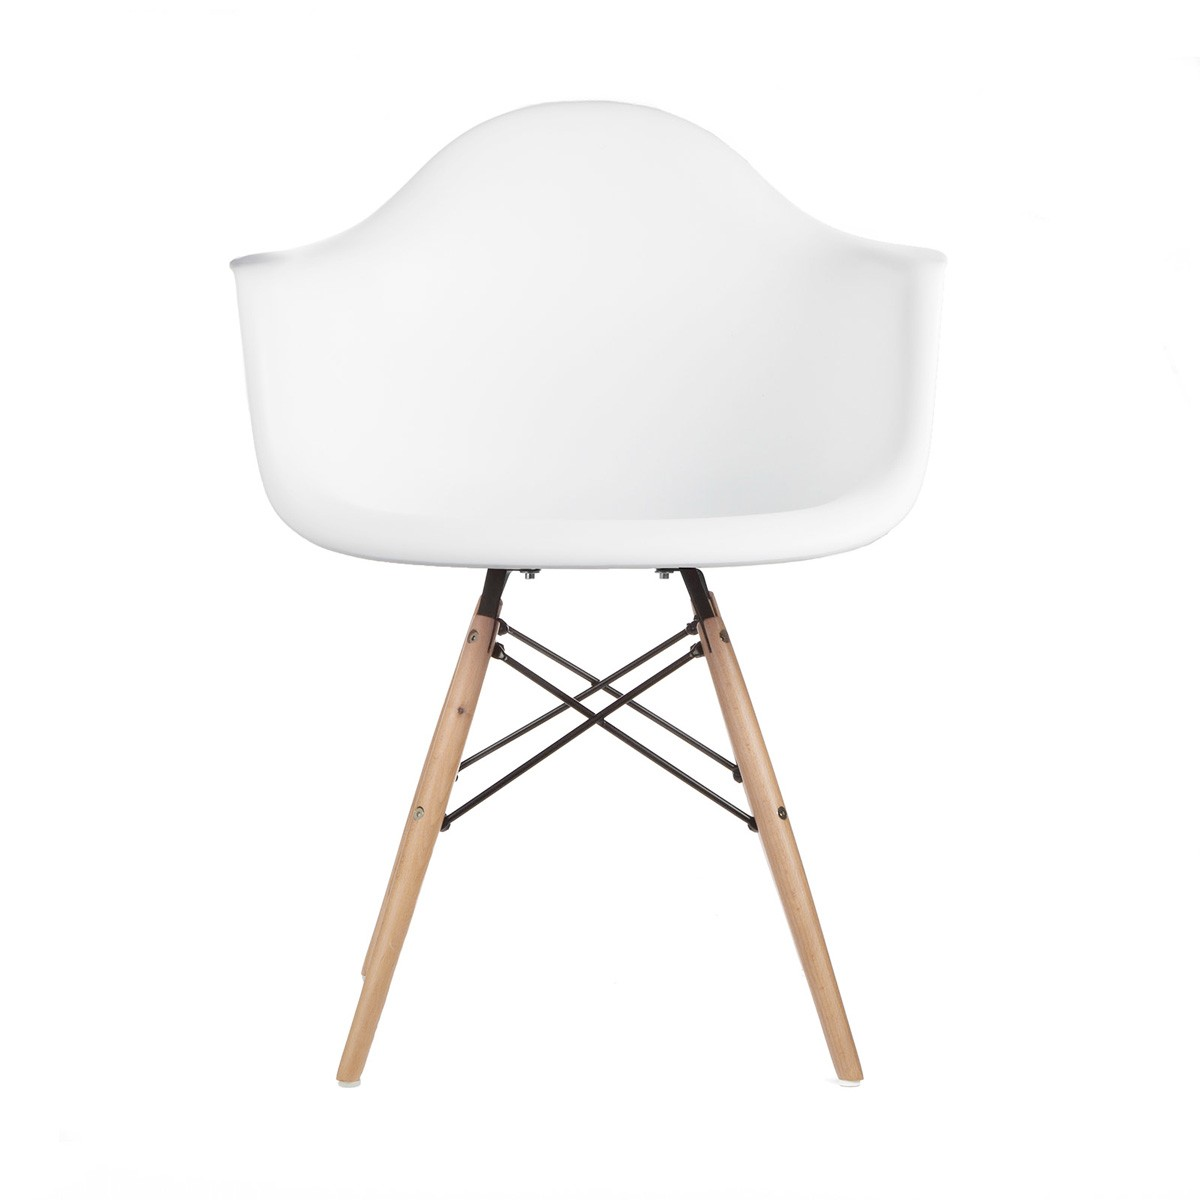 Set of 4 DAW Molded White Plastic Dining Armchair with Wood Eiffel LegsSet of 4 Eames Style DAW Molded White Plastic Dining Armchair with  . Eames Daw Chair Price. Home Design Ideas